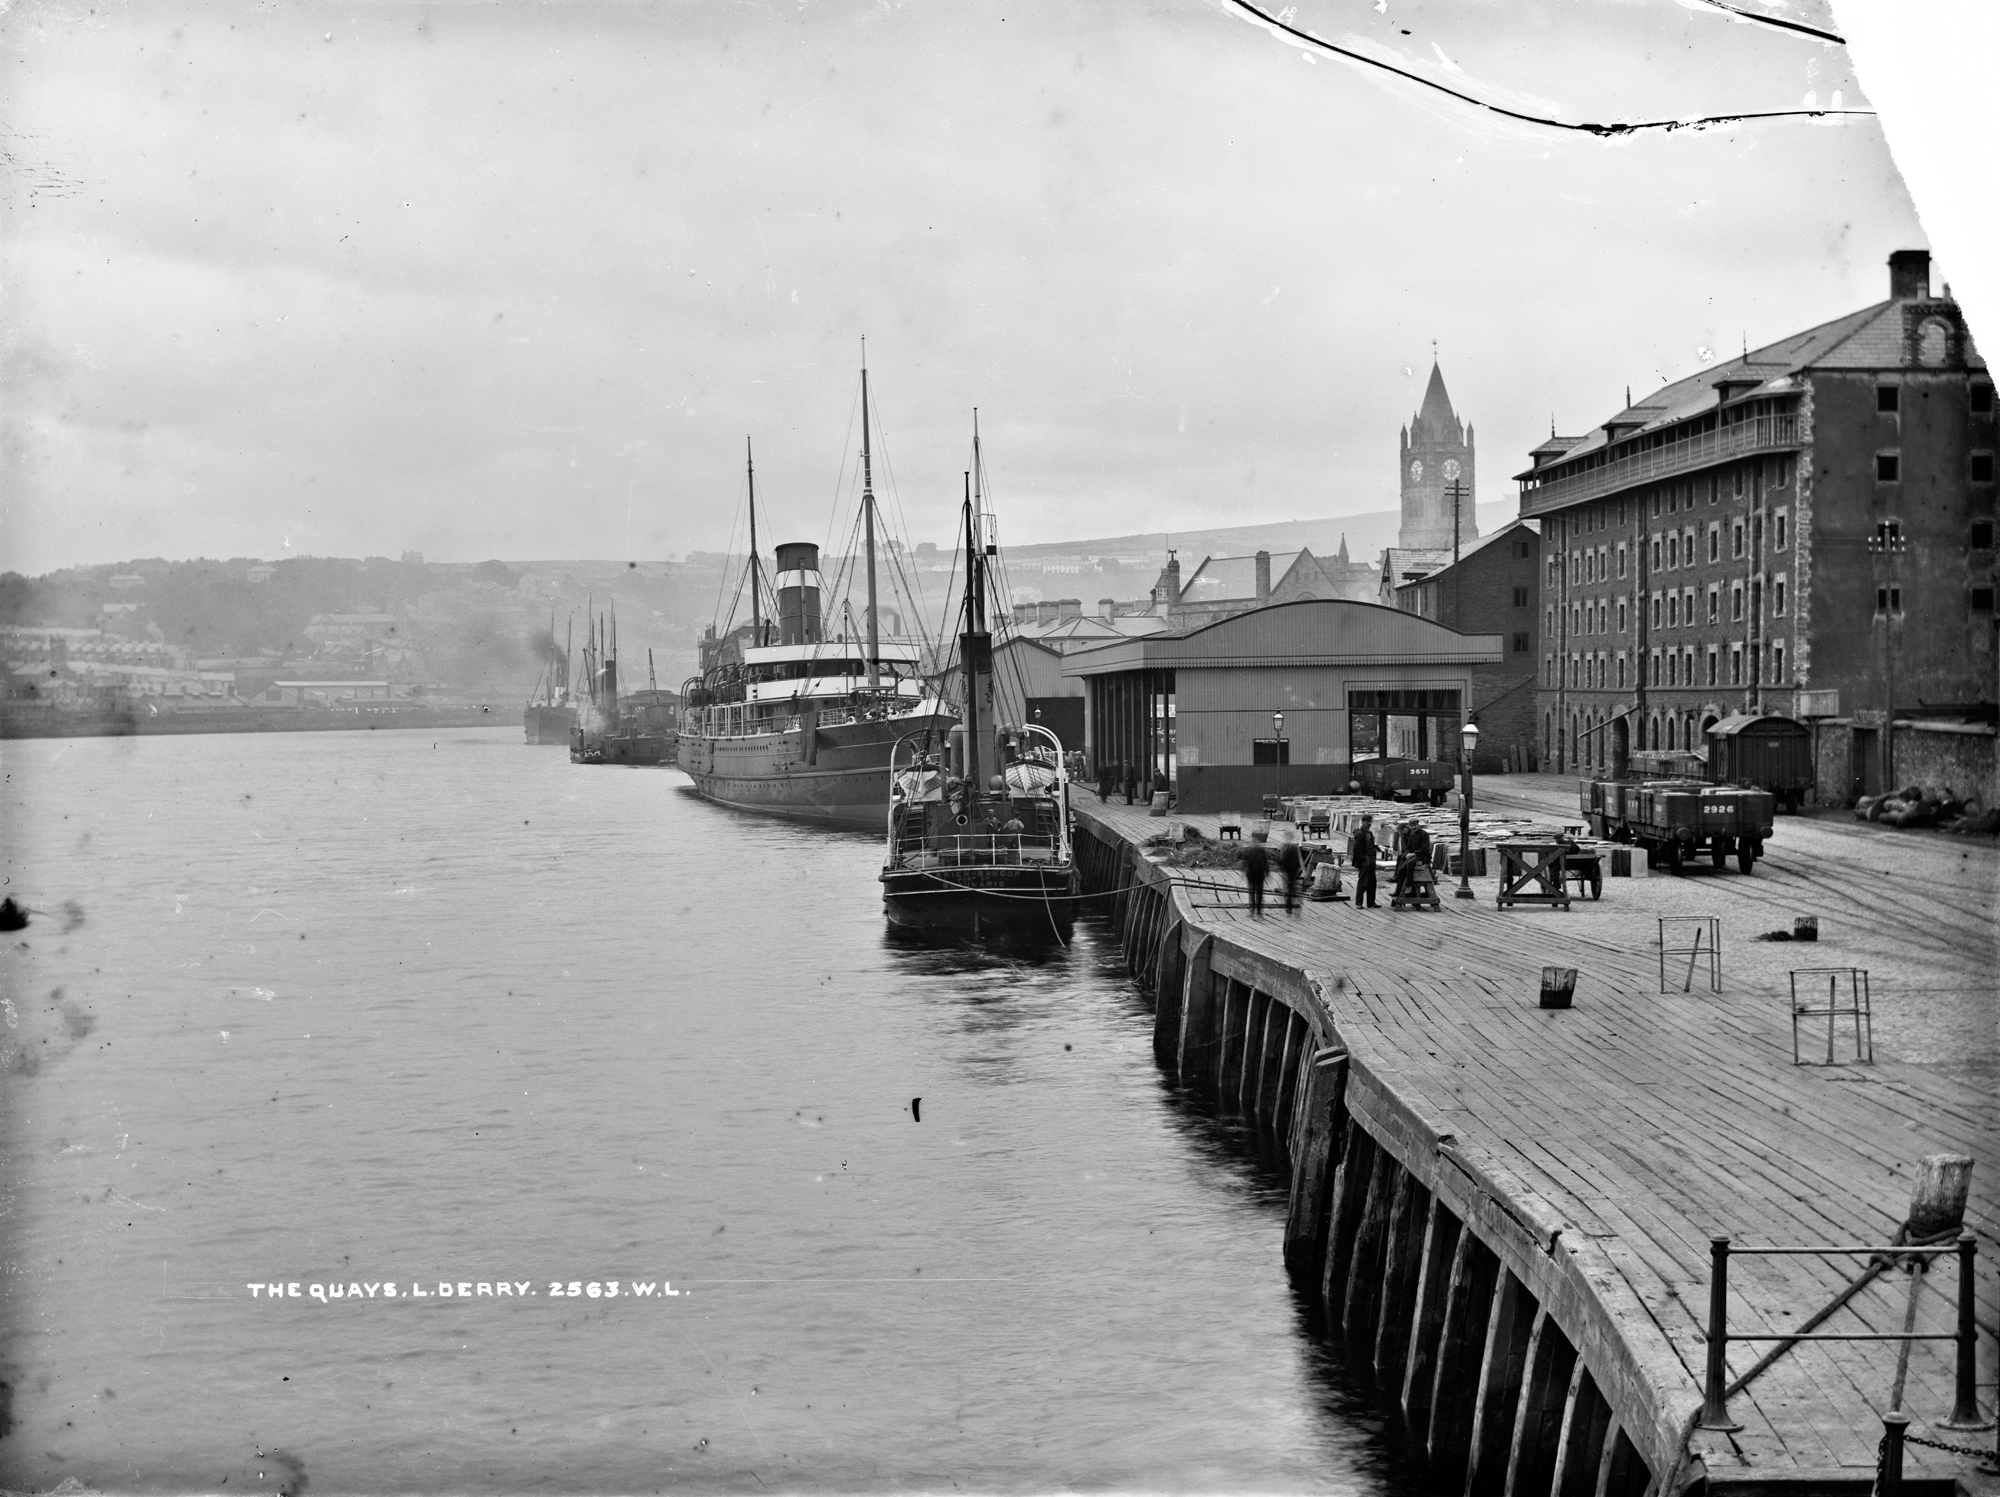 Quays, Derry City, Co. Derry